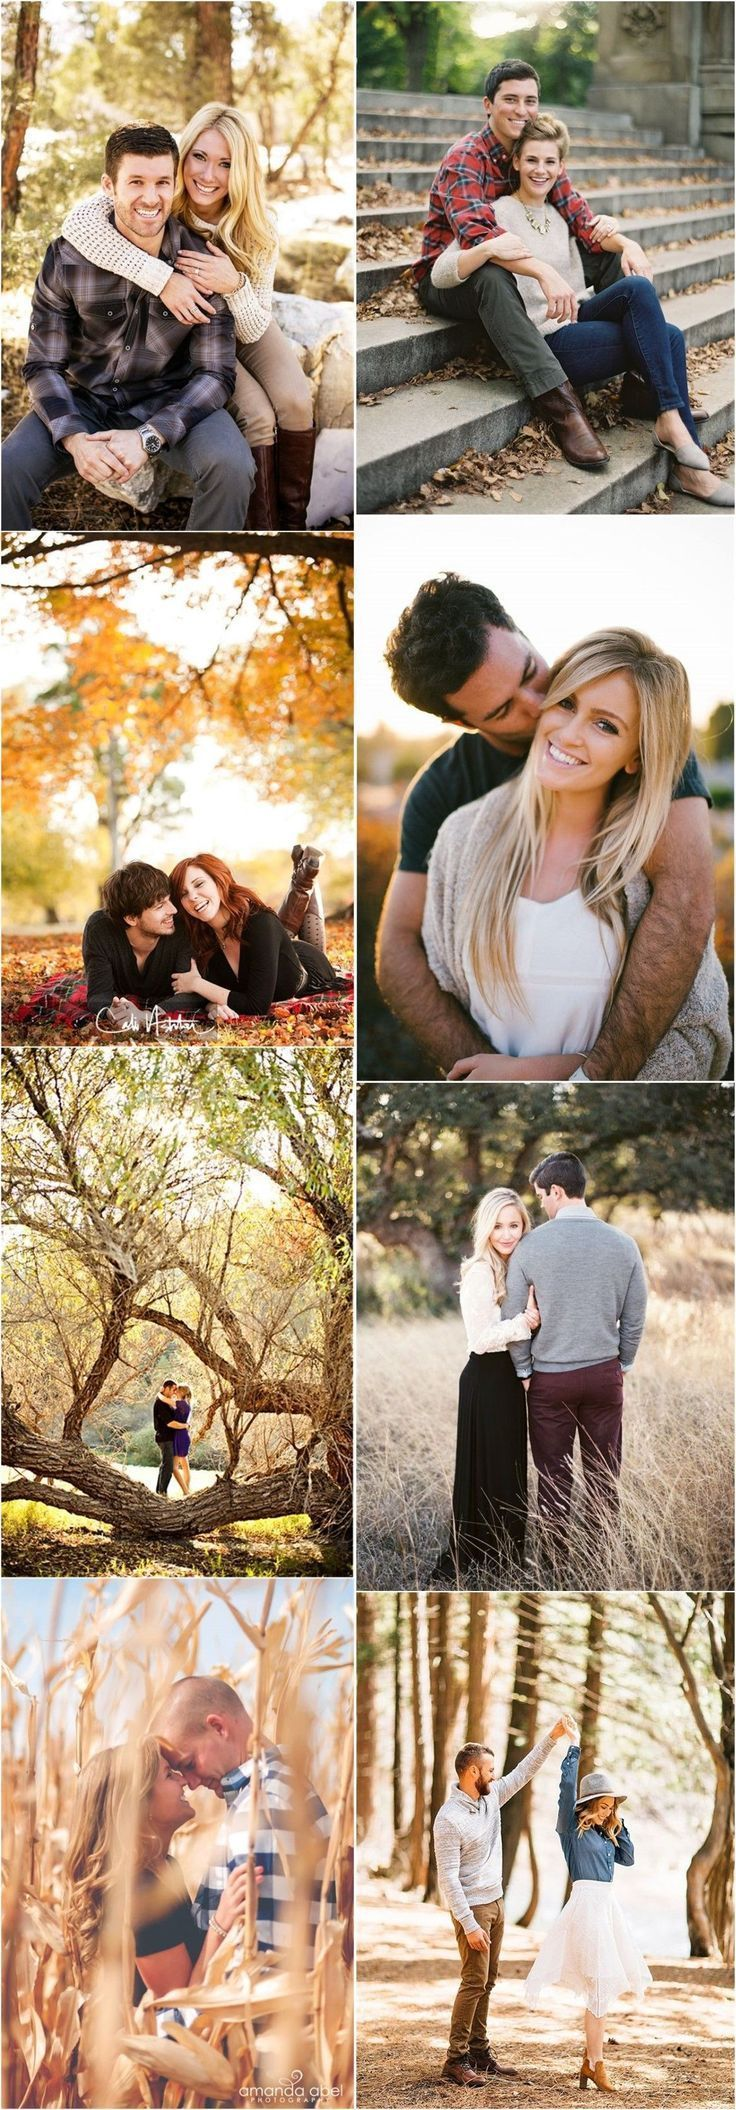 Get Great Engagement Photos   – Holiday Photos